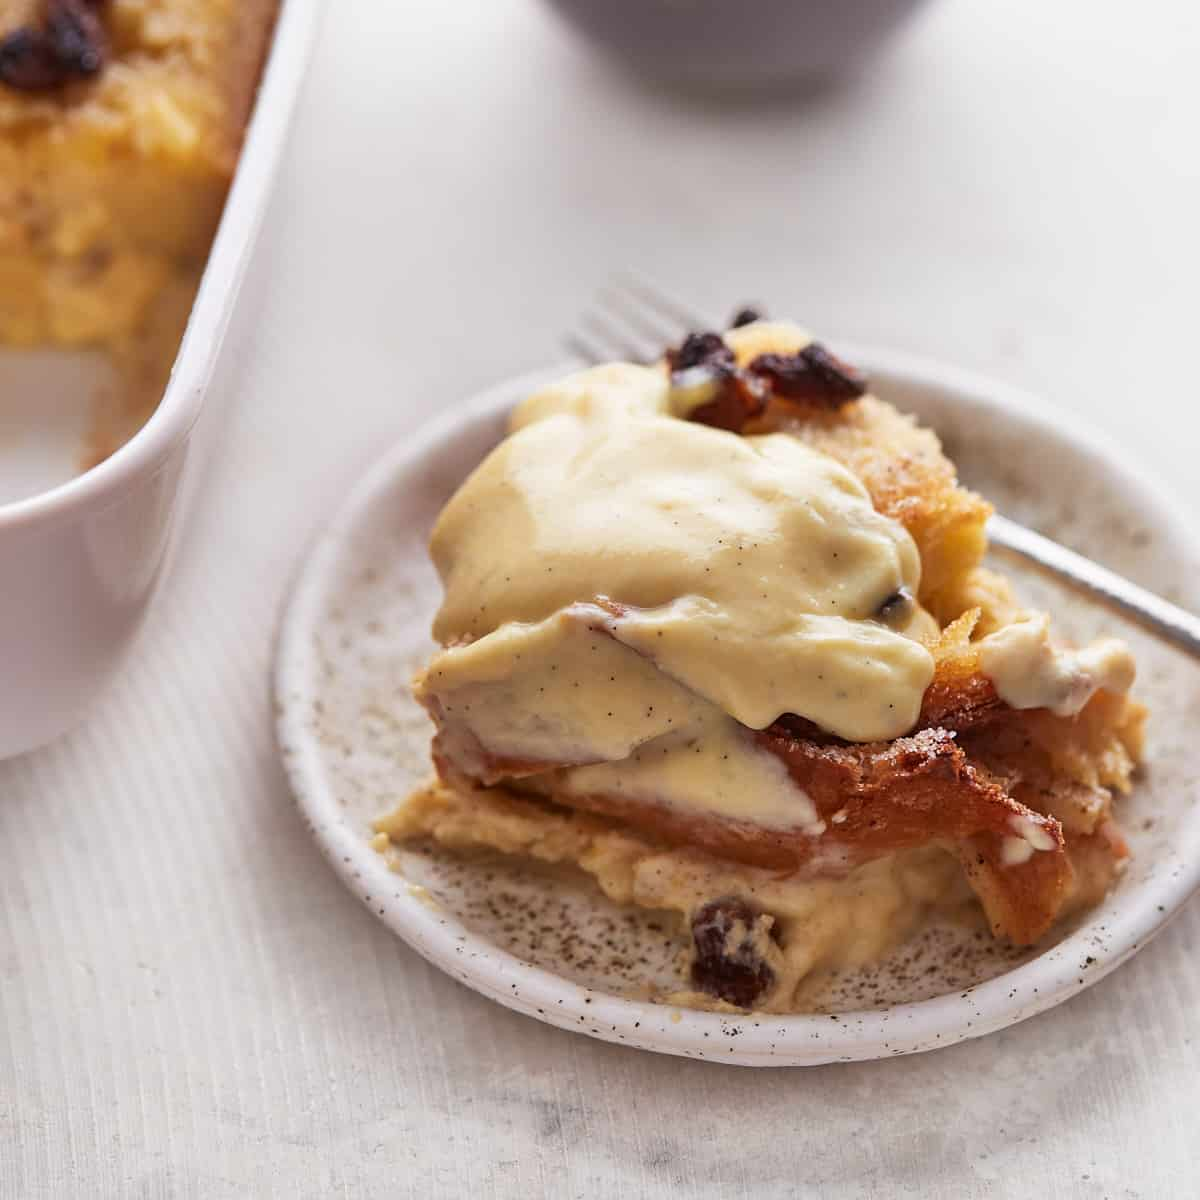 Decorative picture of bread pudding with custard sauce on top on a plate